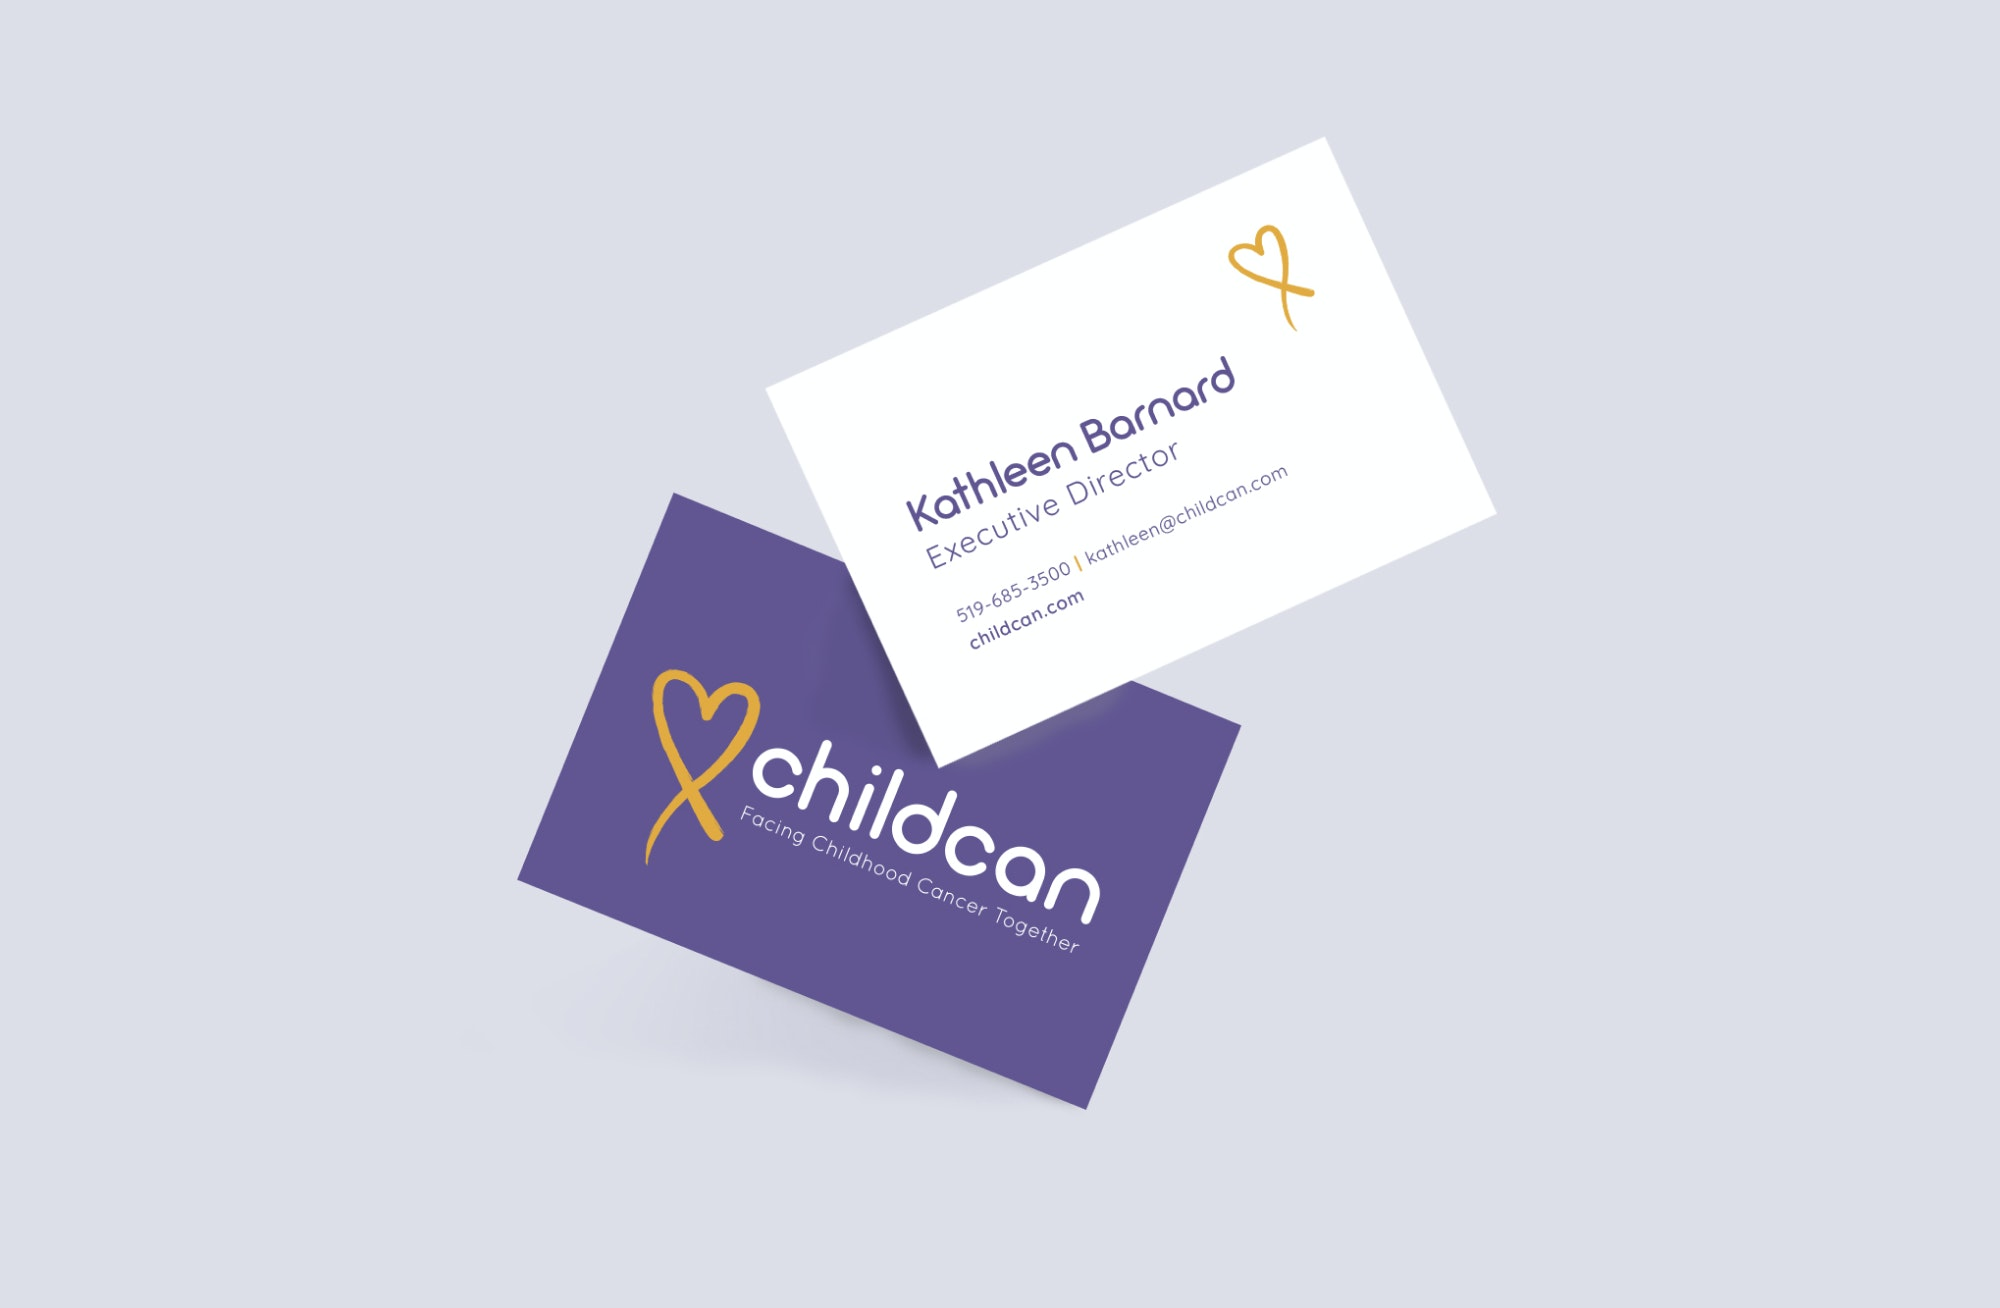 Childcan business cards